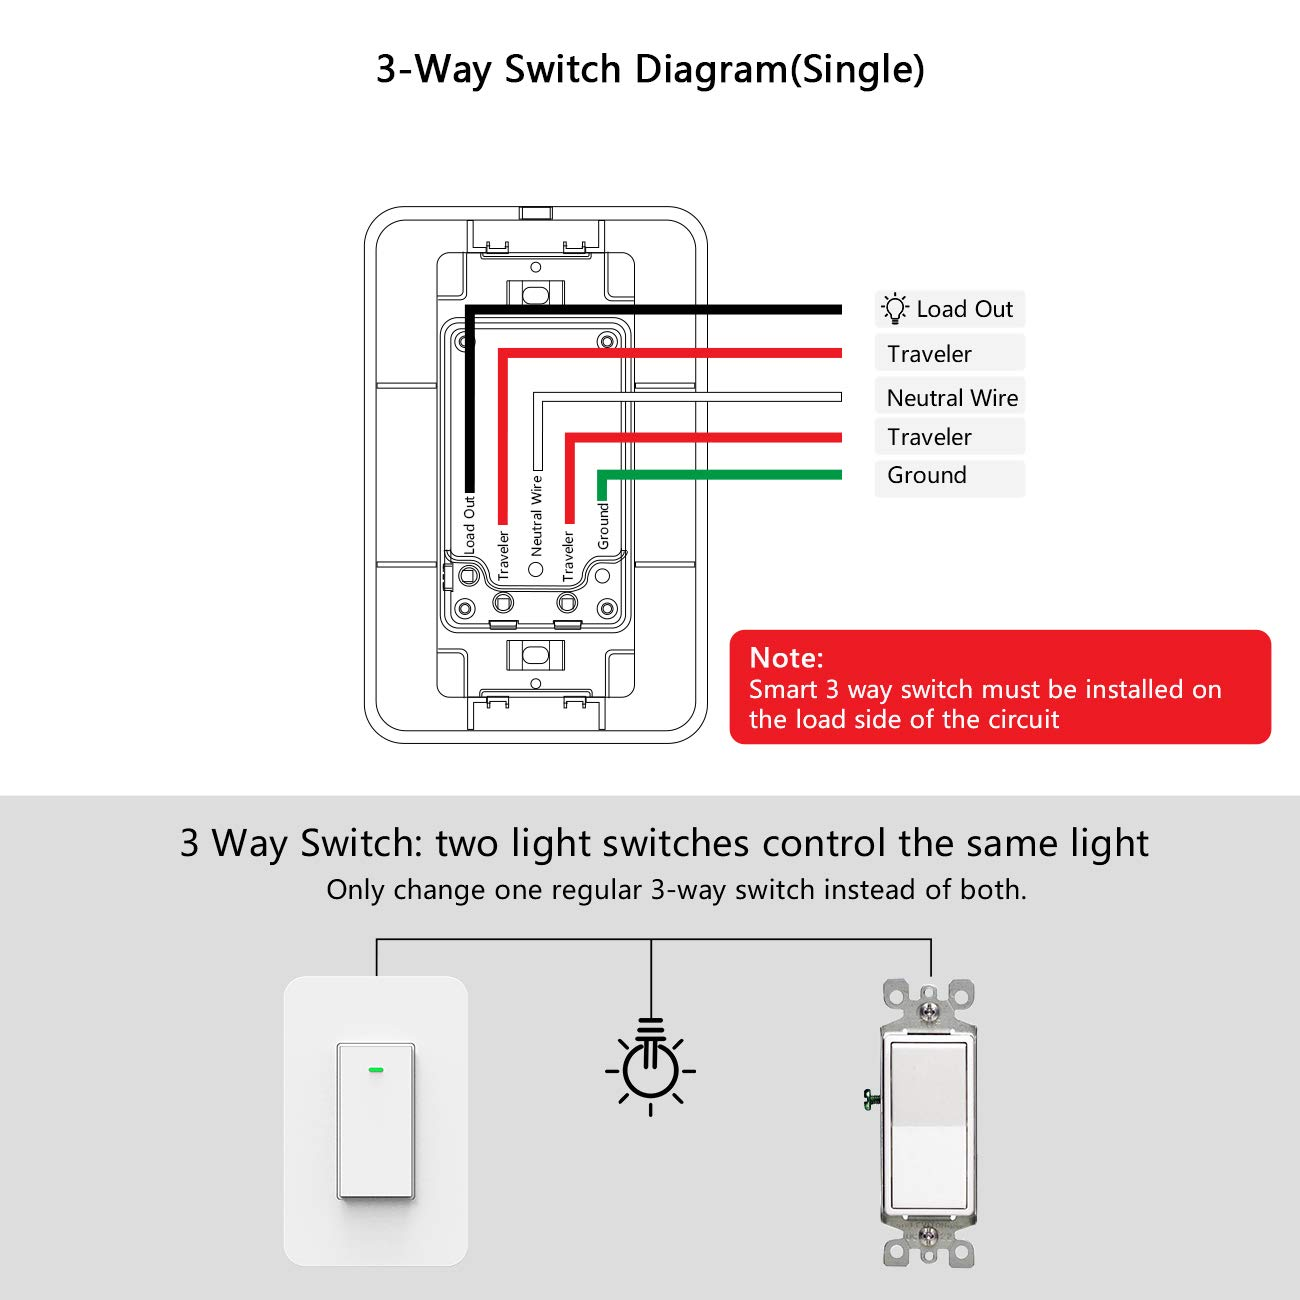 3 way smart switch wifi 3-way light switch compatible with alexa google  assistant and ifttt: amazon.com: industrial & scientific  amazon.com